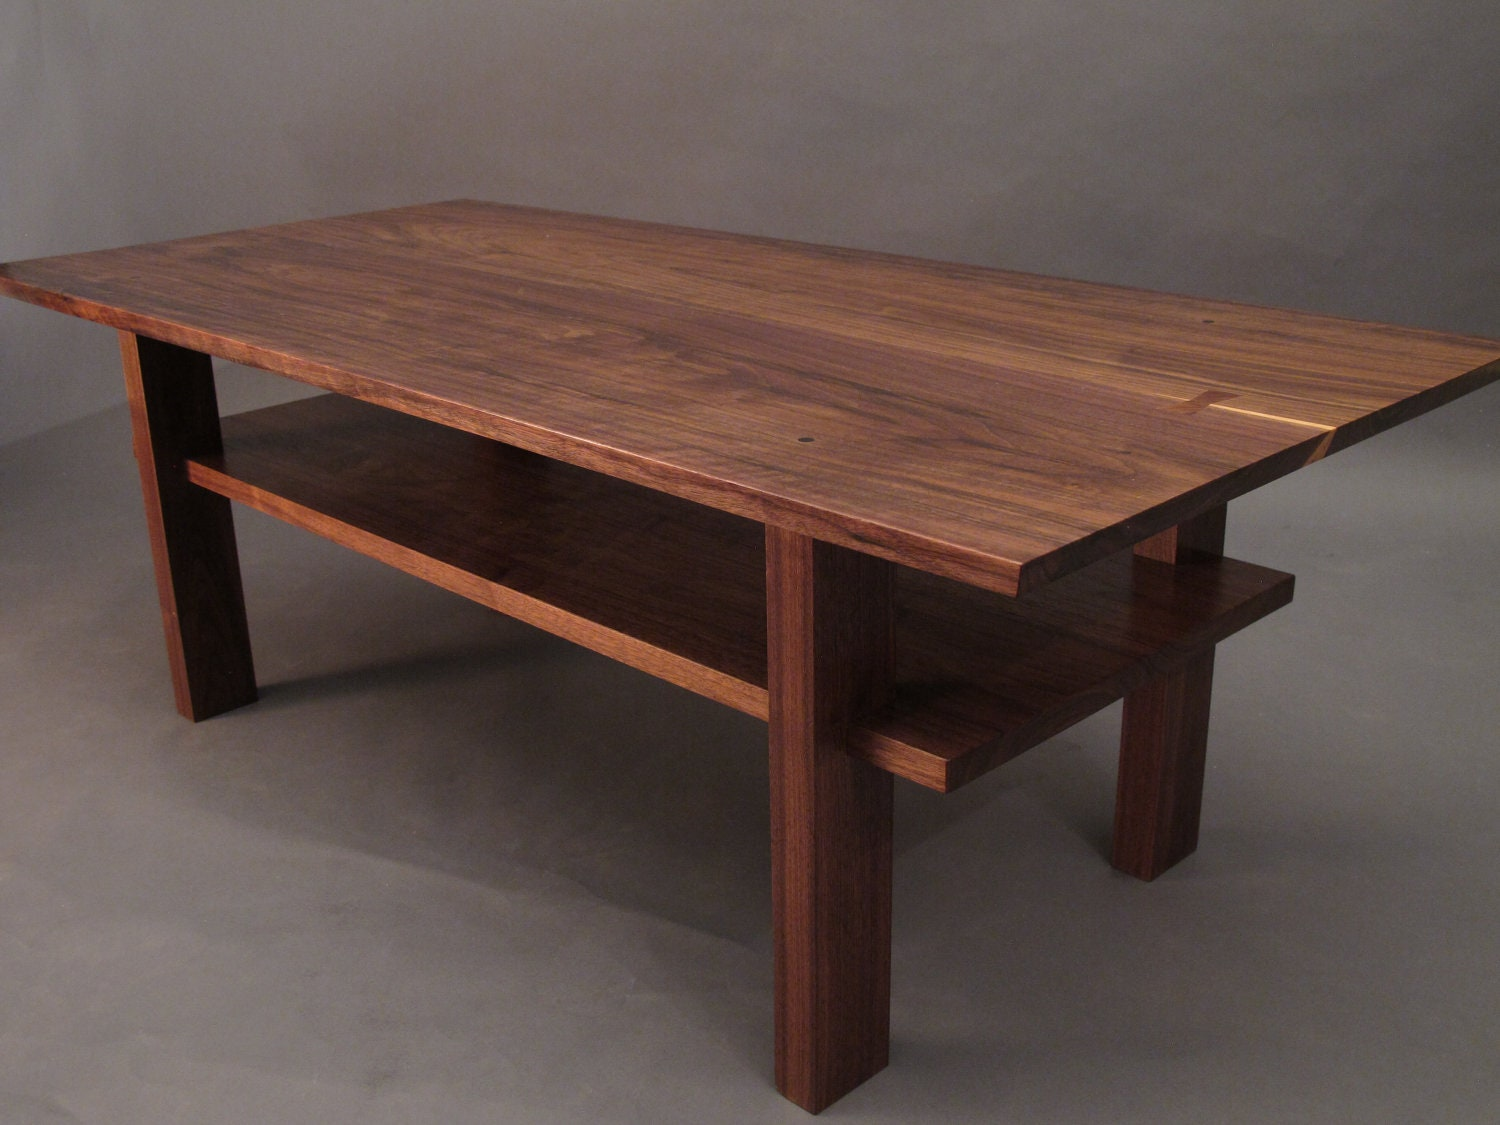 Living Room Furniture Walnut Wood walnut coffee table small wood tables for living room narrow